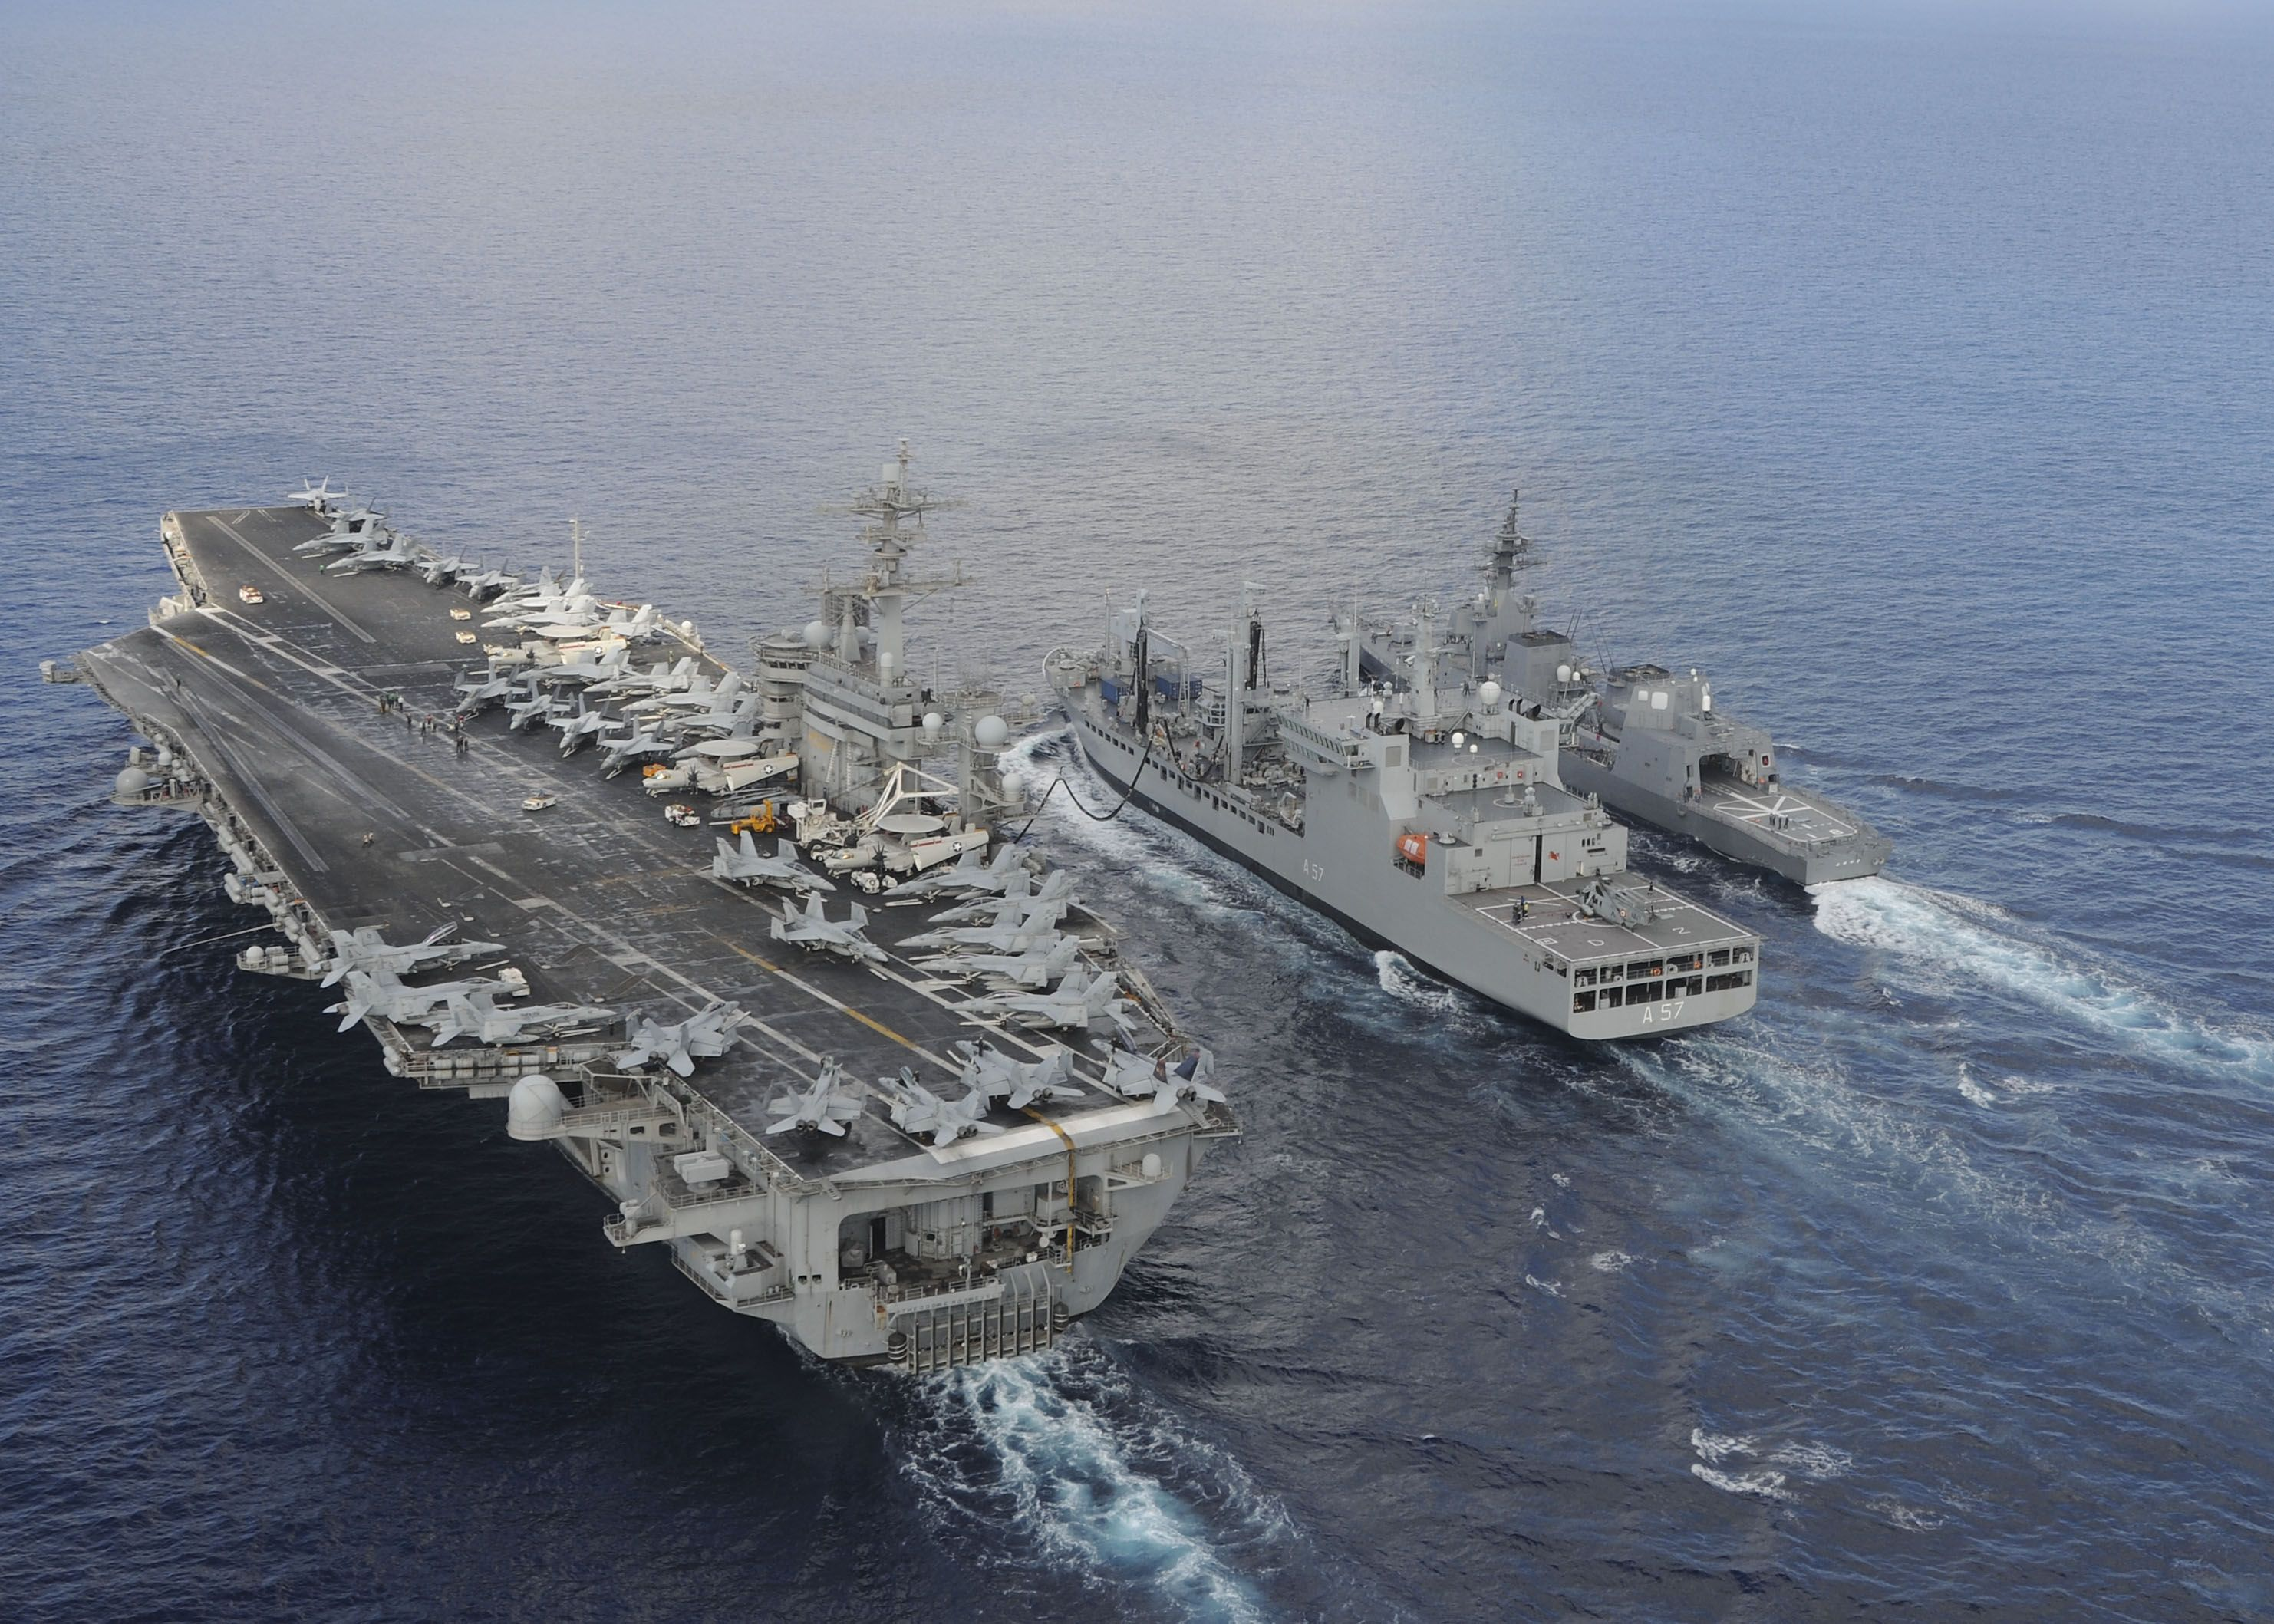 INDIAN OCEAN,Oct.18,2015.Aircraft carrier USS Theodore Roosevelt (CVN 71) & Japanese Maritime Self-defense Force Akizuki-class destroyer JS Fuyuzuki (DD-118) sail alongside Indian Deepak-class fleet tanker INS Shakti (A 57) during replenishment-at-sea exercise as part of Exercise Malabar 2015.Malabar continuing series of complex,high-end war fighting exercises conducted to advance multi-national maritime relationships & mutual security.USS Theodore Roosevelt (CVN 71) operating in US 7th AOR.